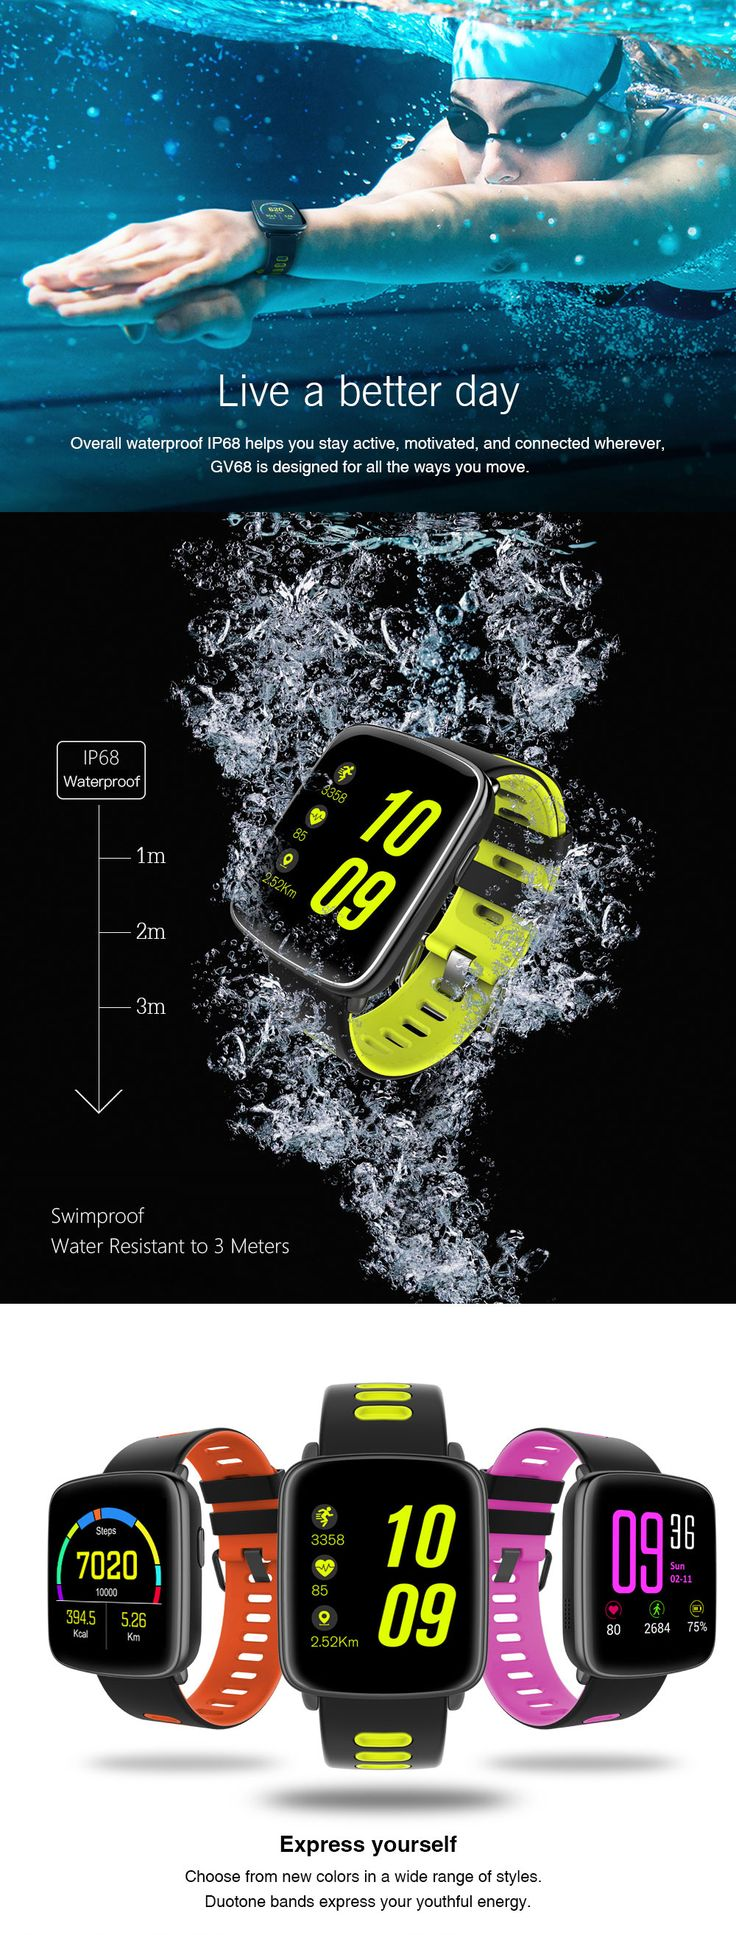 #watch #fashion #fashionstyle #waterproofwatch $49.99 for GV68 IP68 Waterproof Smart Watch Heart Rate Monitor Support Bluetooth.A good watch you deserve,buy it now!